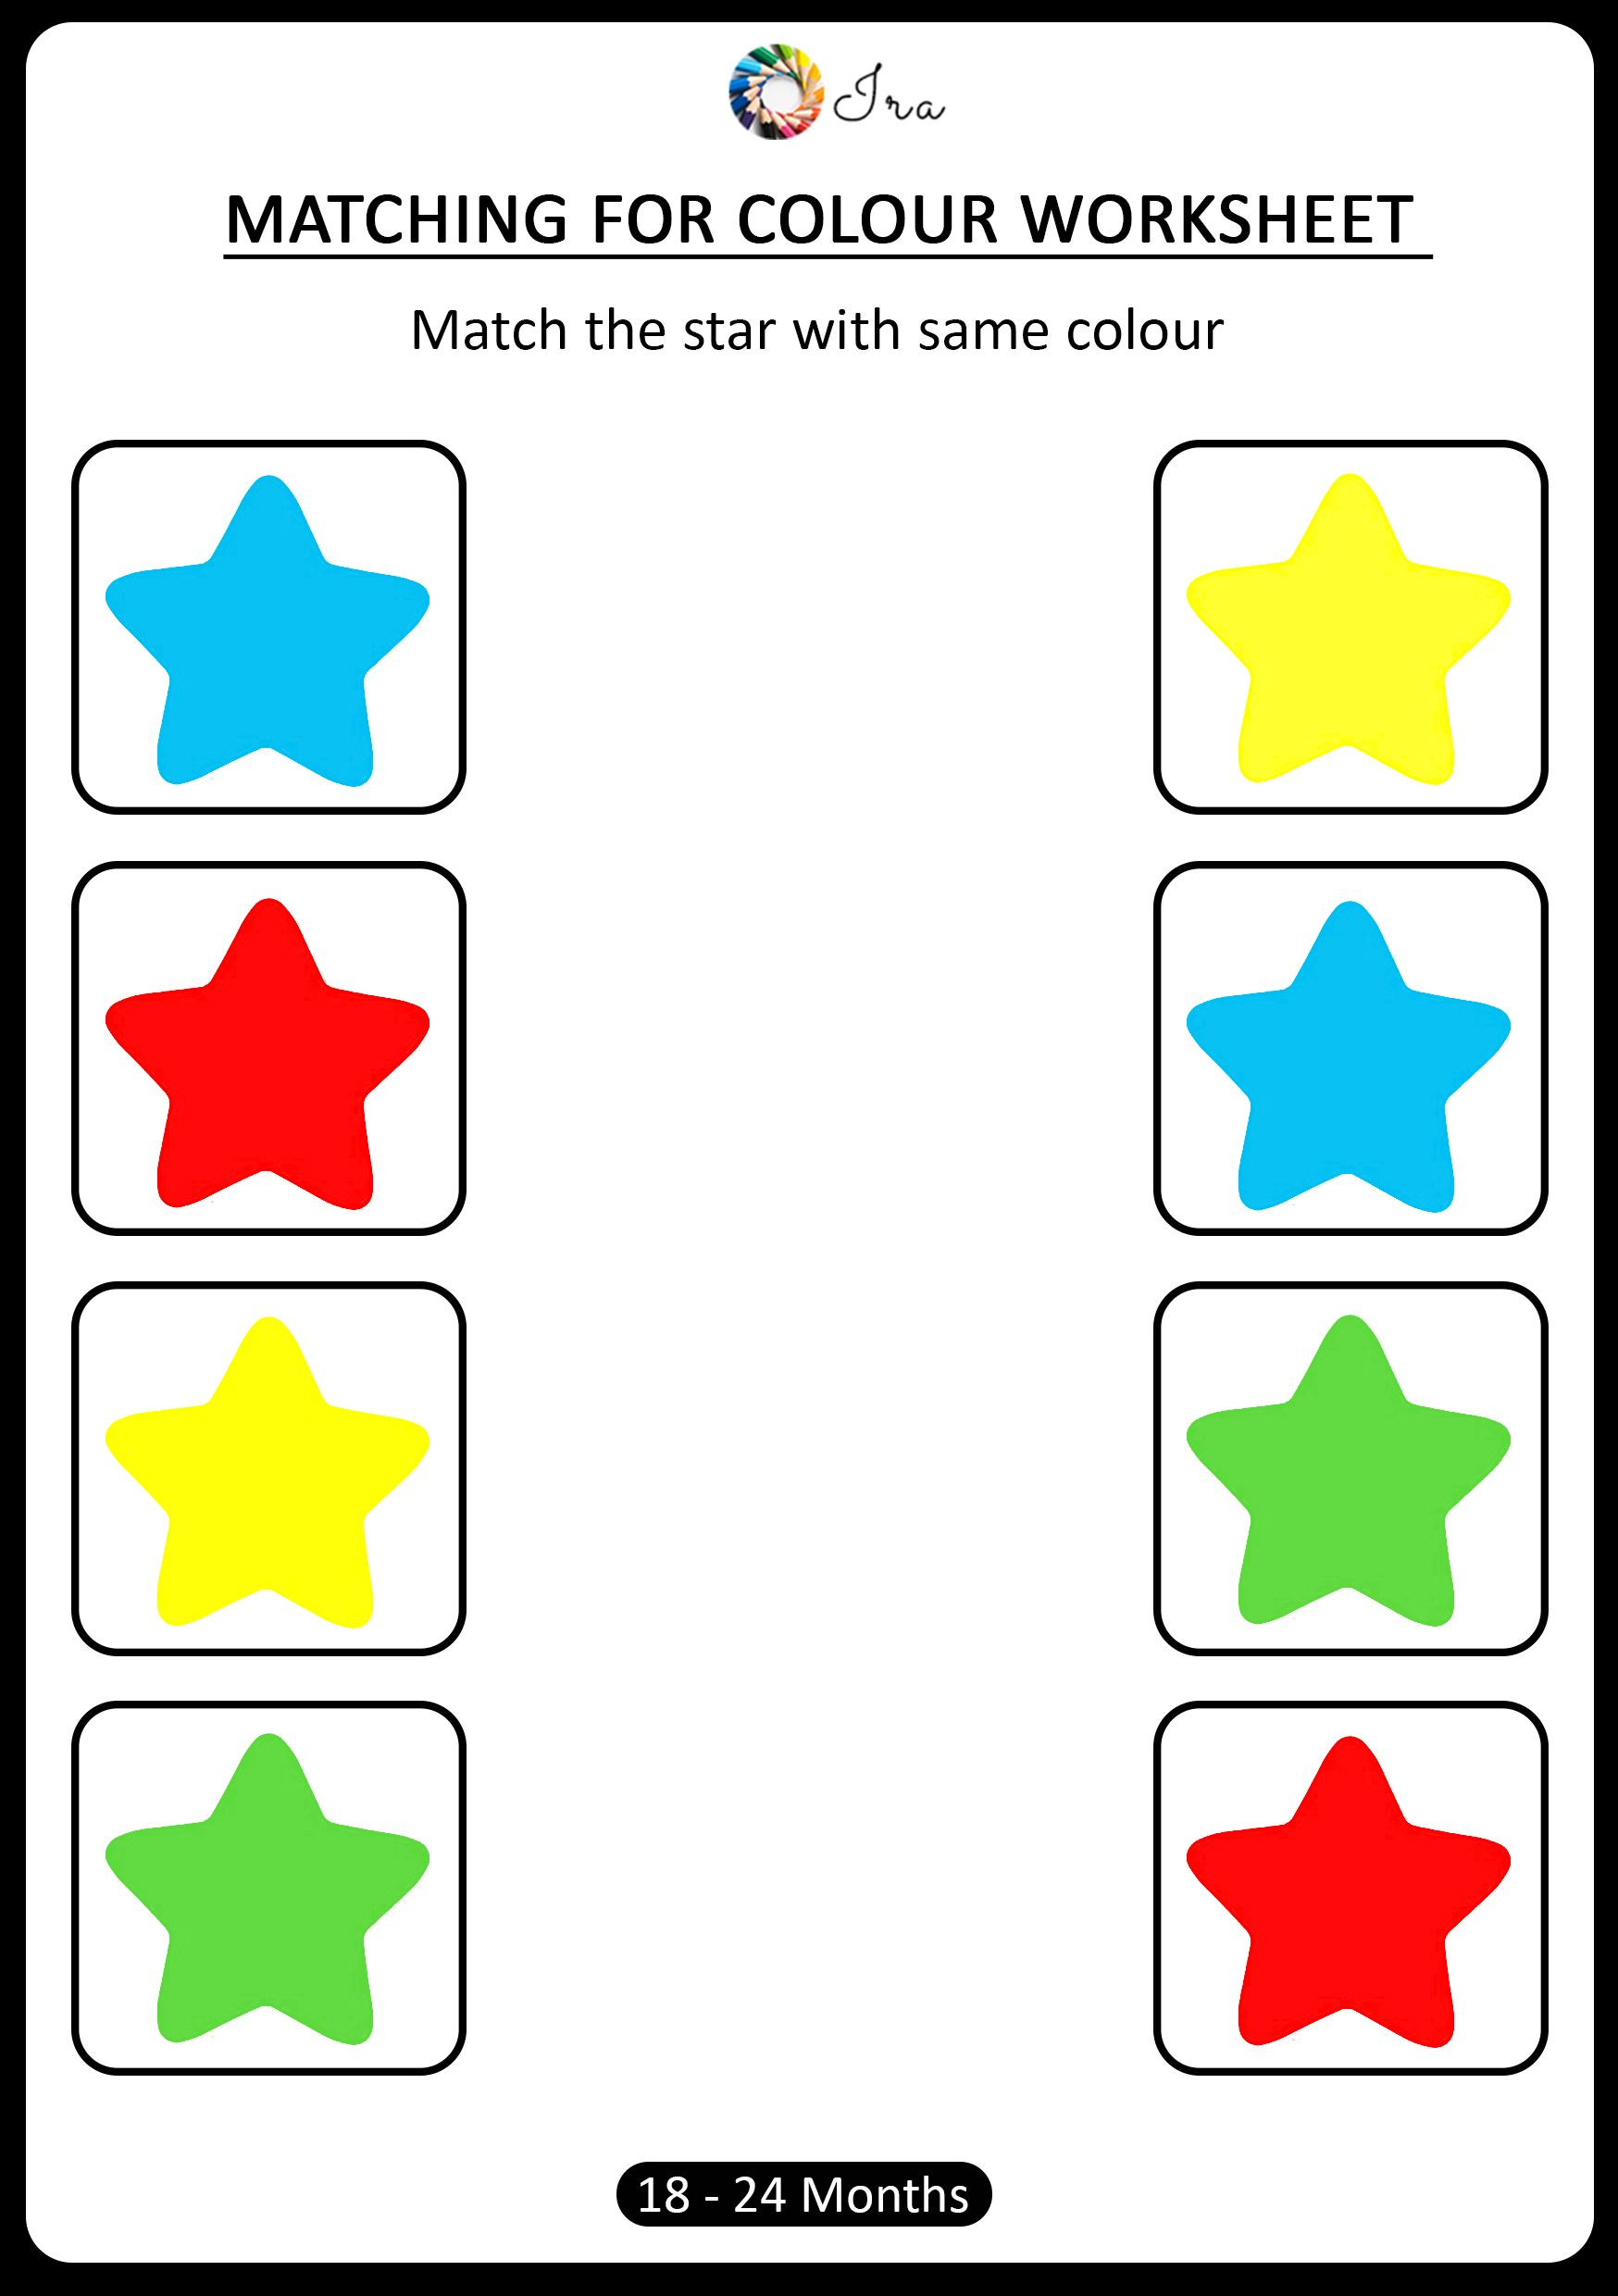 Free Downloadable Matching Colors Worksheets 18 24 Months Ira Parenting Color Worksheets For Preschool Preschool Math Worksheets Free Preschool Worksheets [ 2480 x 1748 Pixel ]